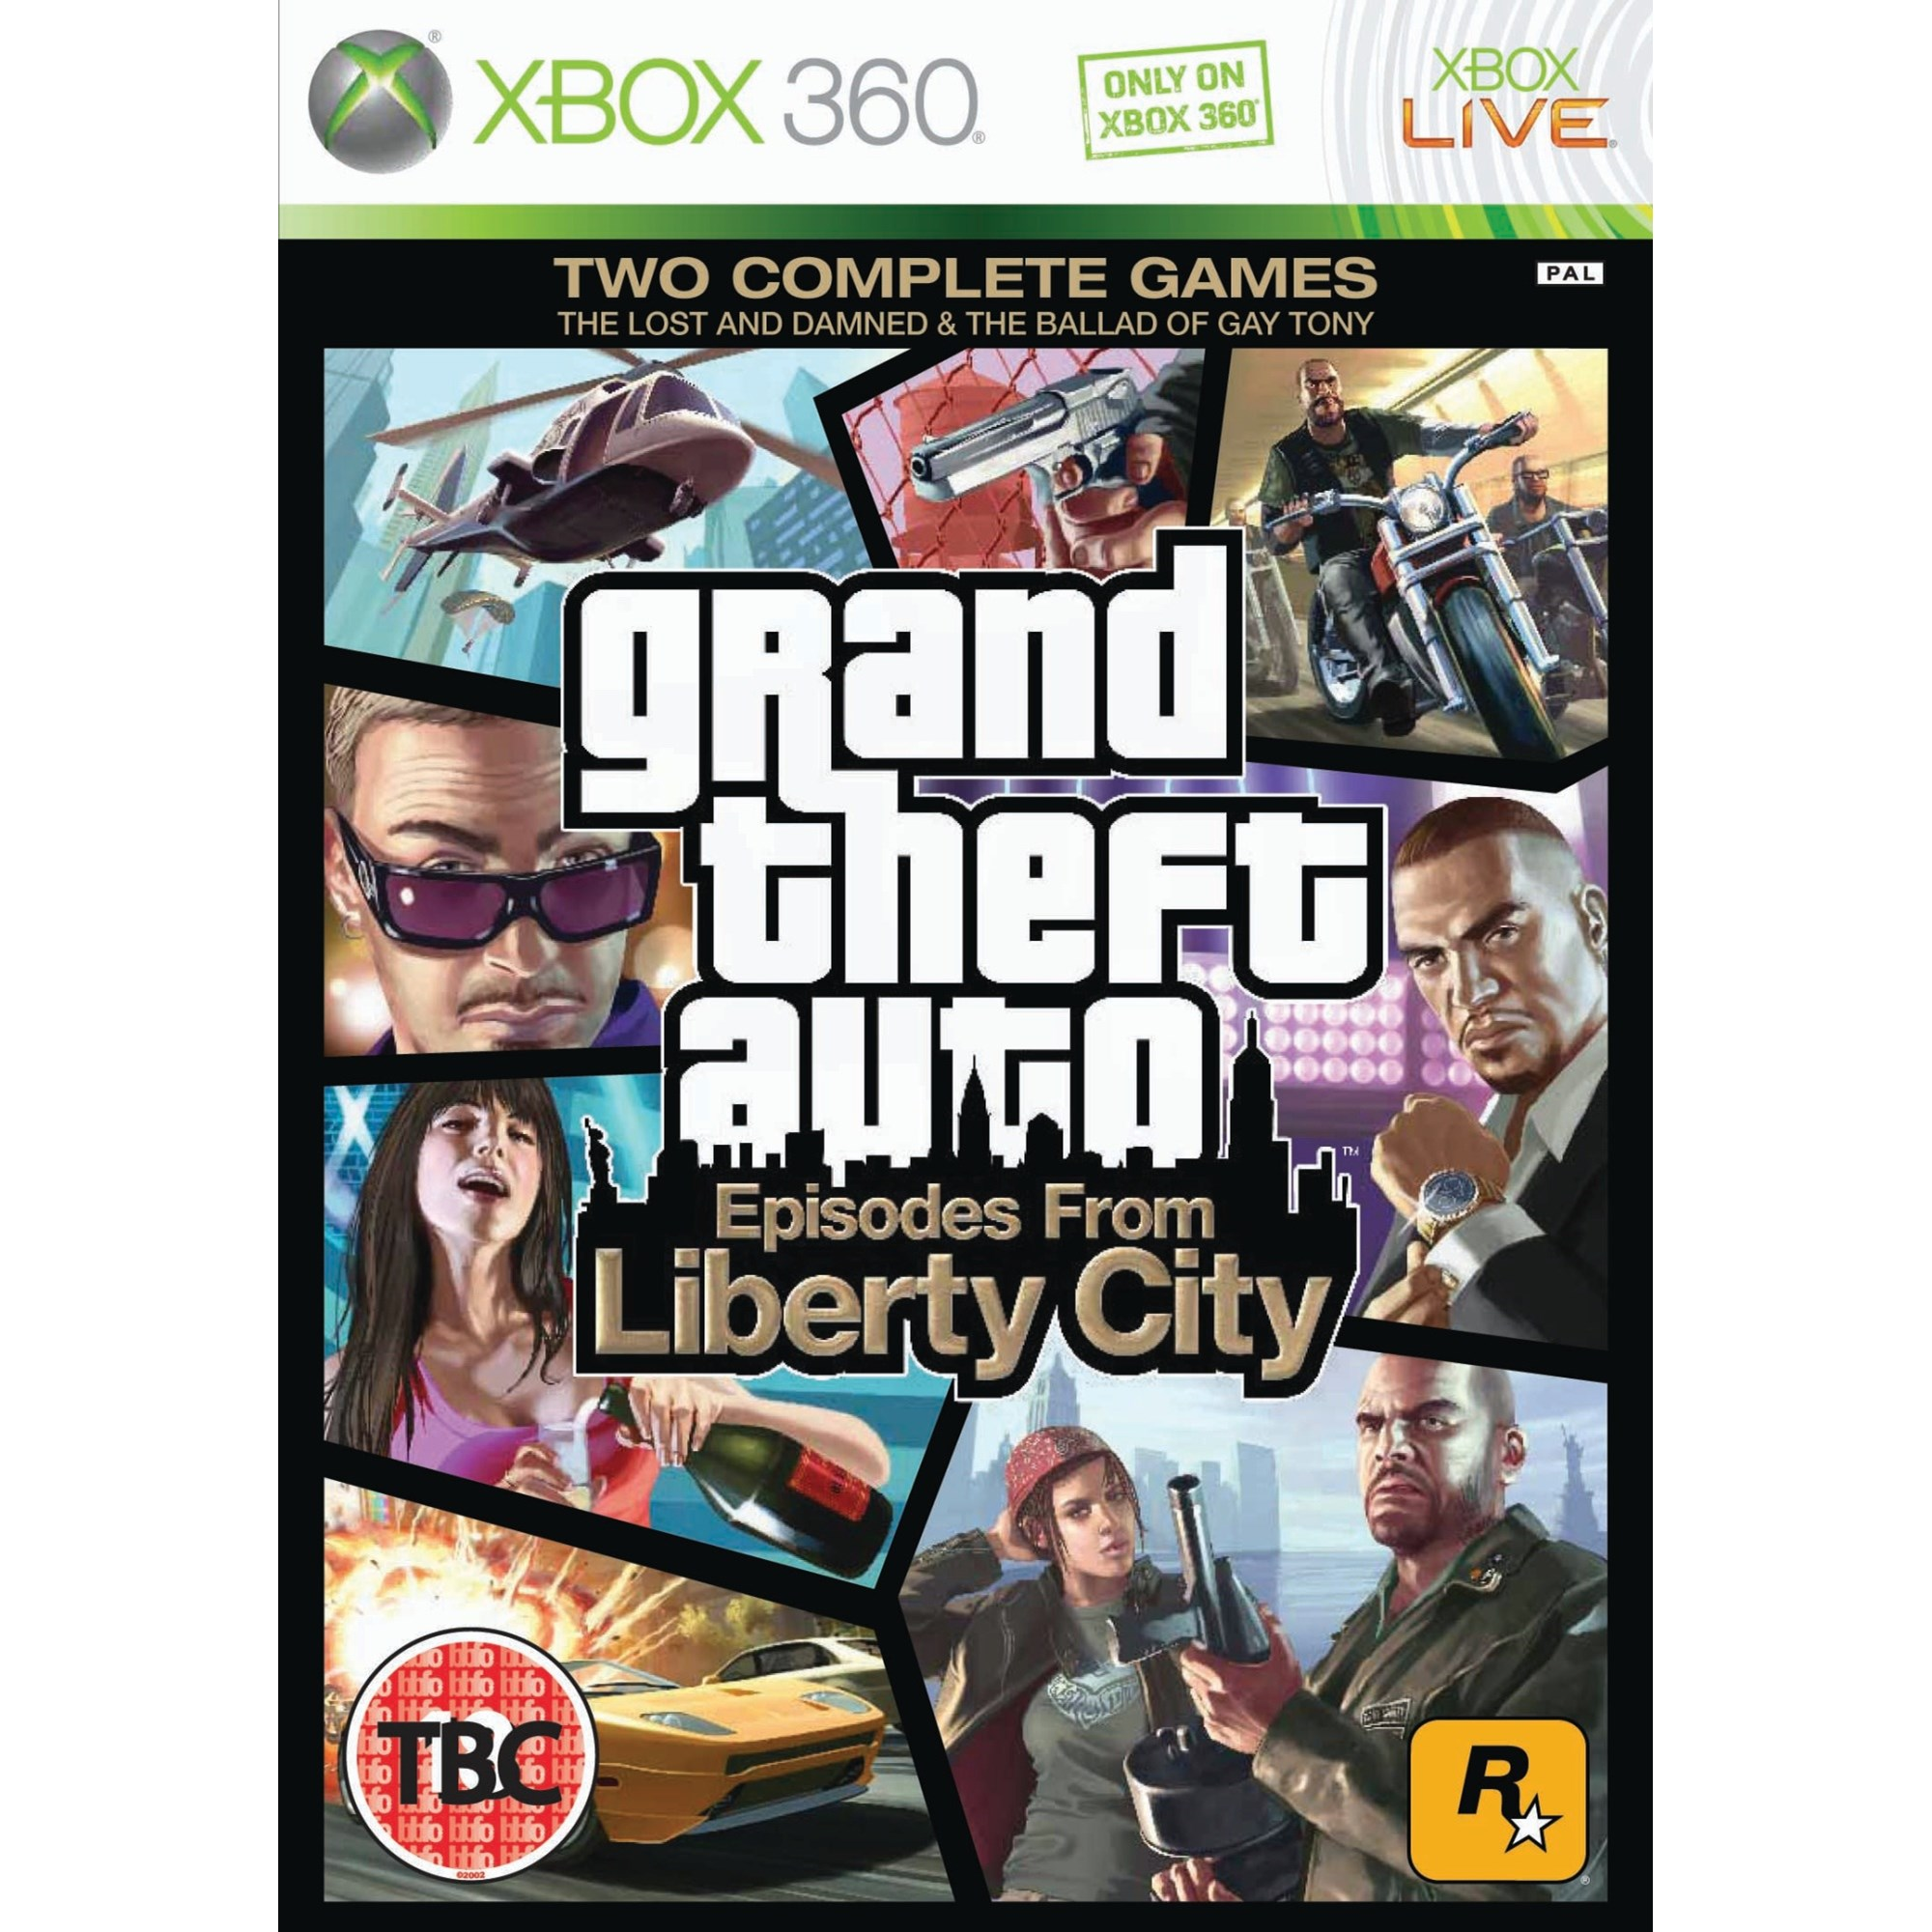 GTA Episodes From Liberty City X360